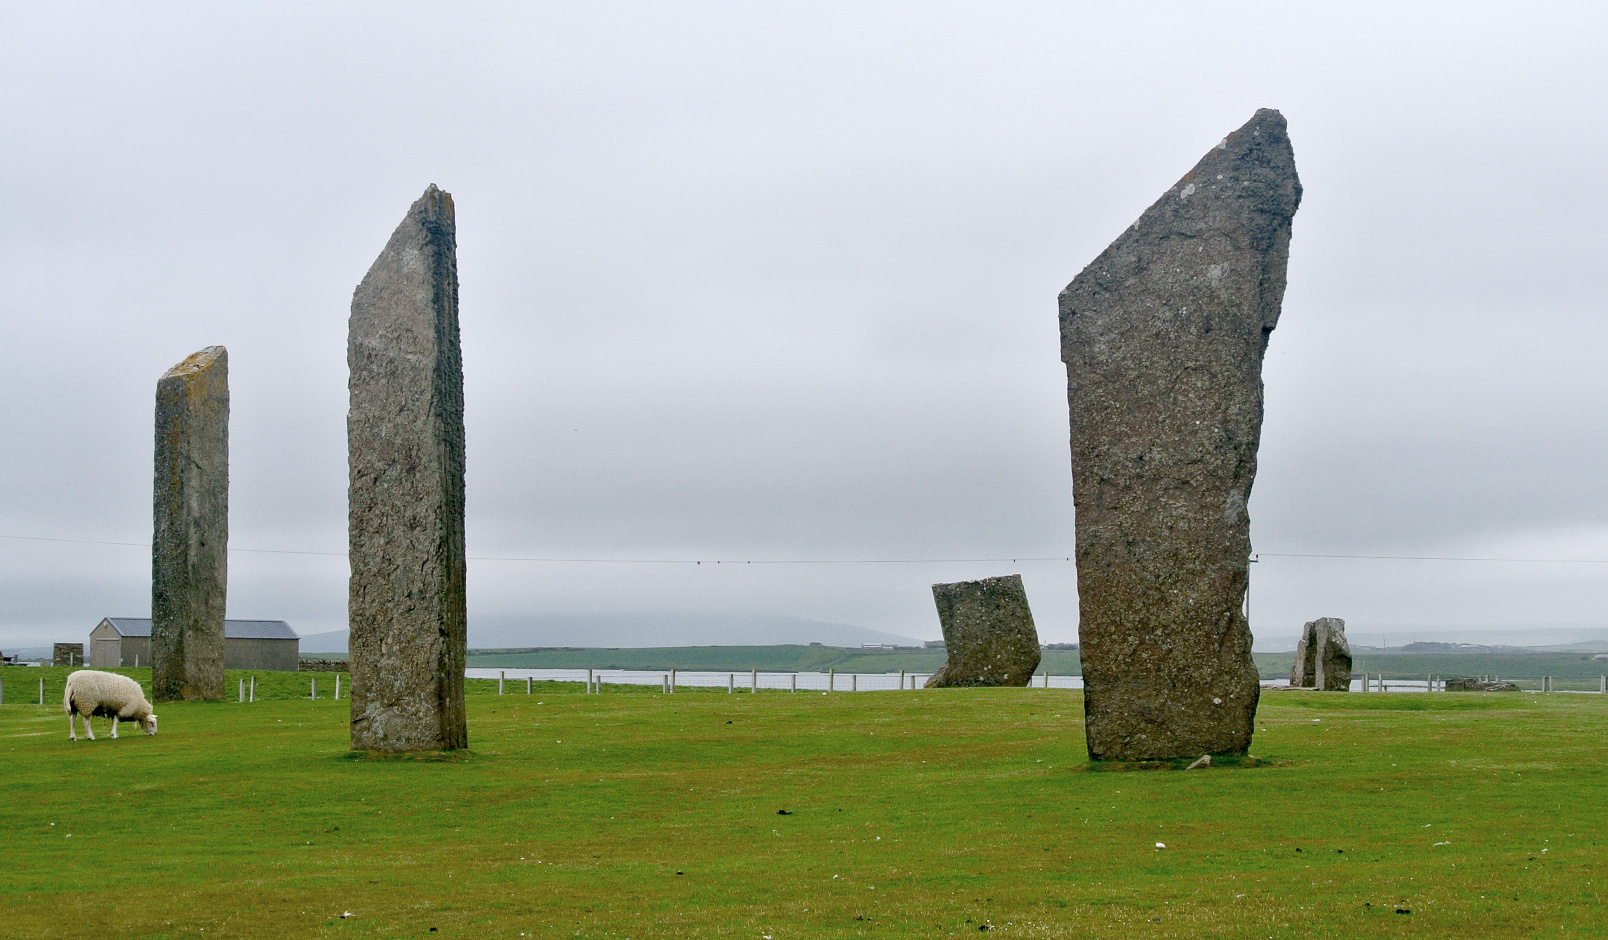 The circle of the Stones of Stenness is 32.2 x 30.6 metres (106 x 100 feet). Its earthen henge is 45 metres (148 feet) in diameter, over 7 metres (23 feet) wide and over 2 metres (6.5 feet) deep and the circumference is 141.37 metres (464 feet). Image credit: Wikimedia Commons.